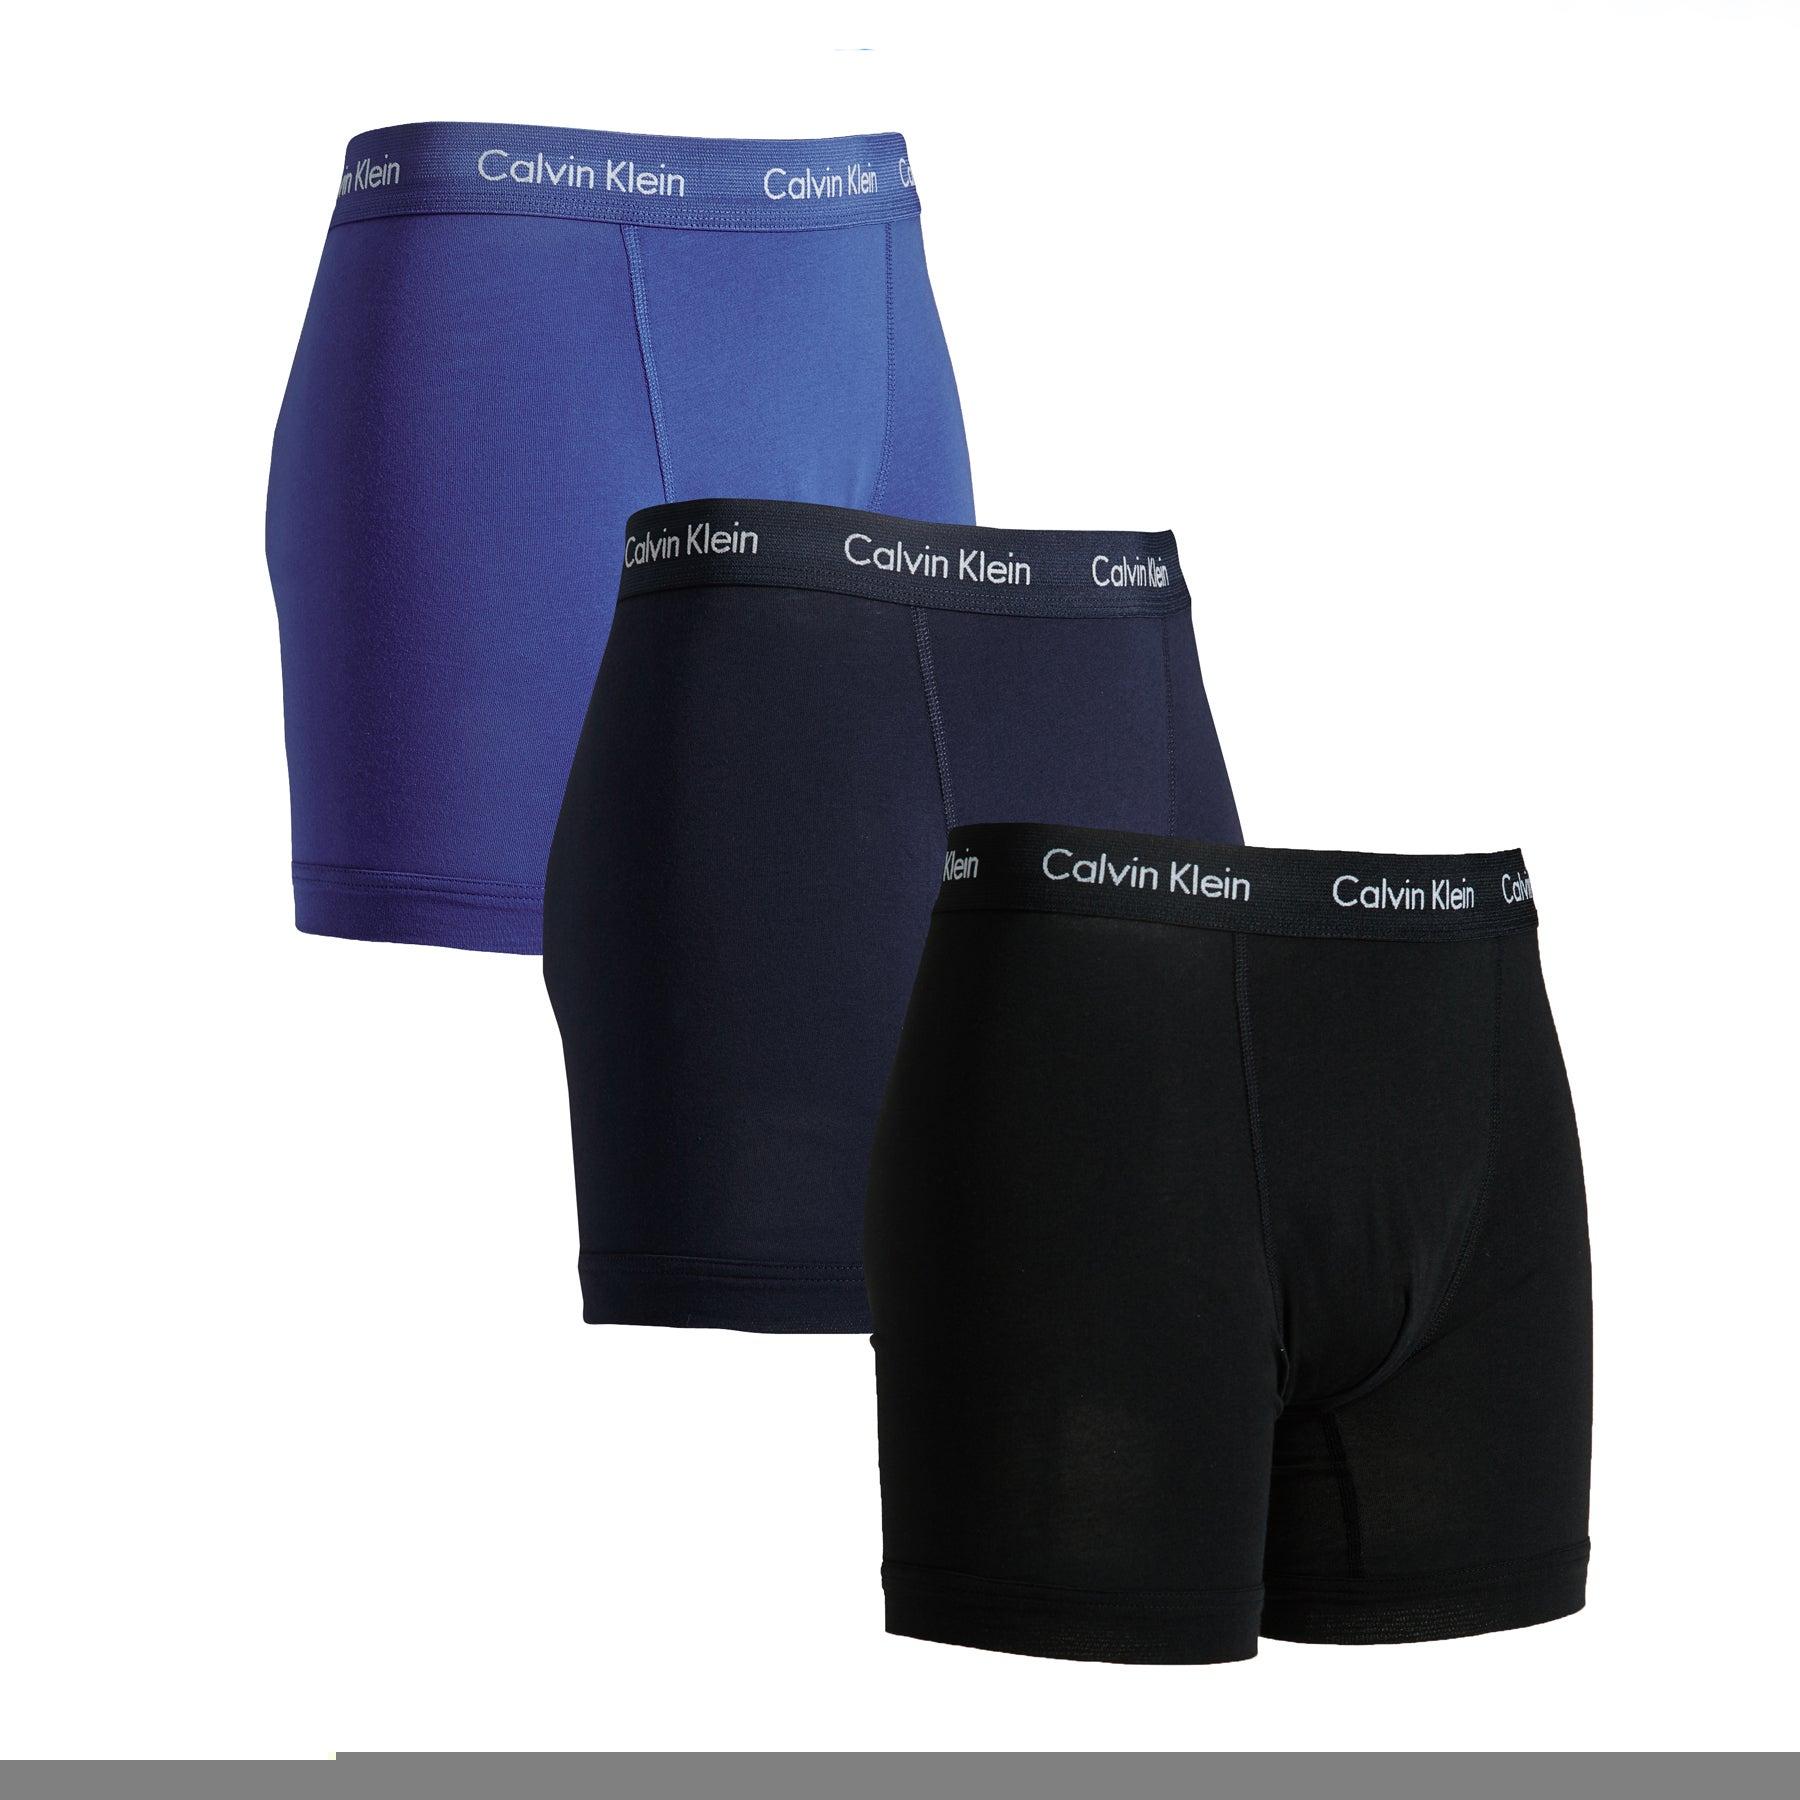 Shorts boxer Calvin Klein Cotton Stretch 3 Pack